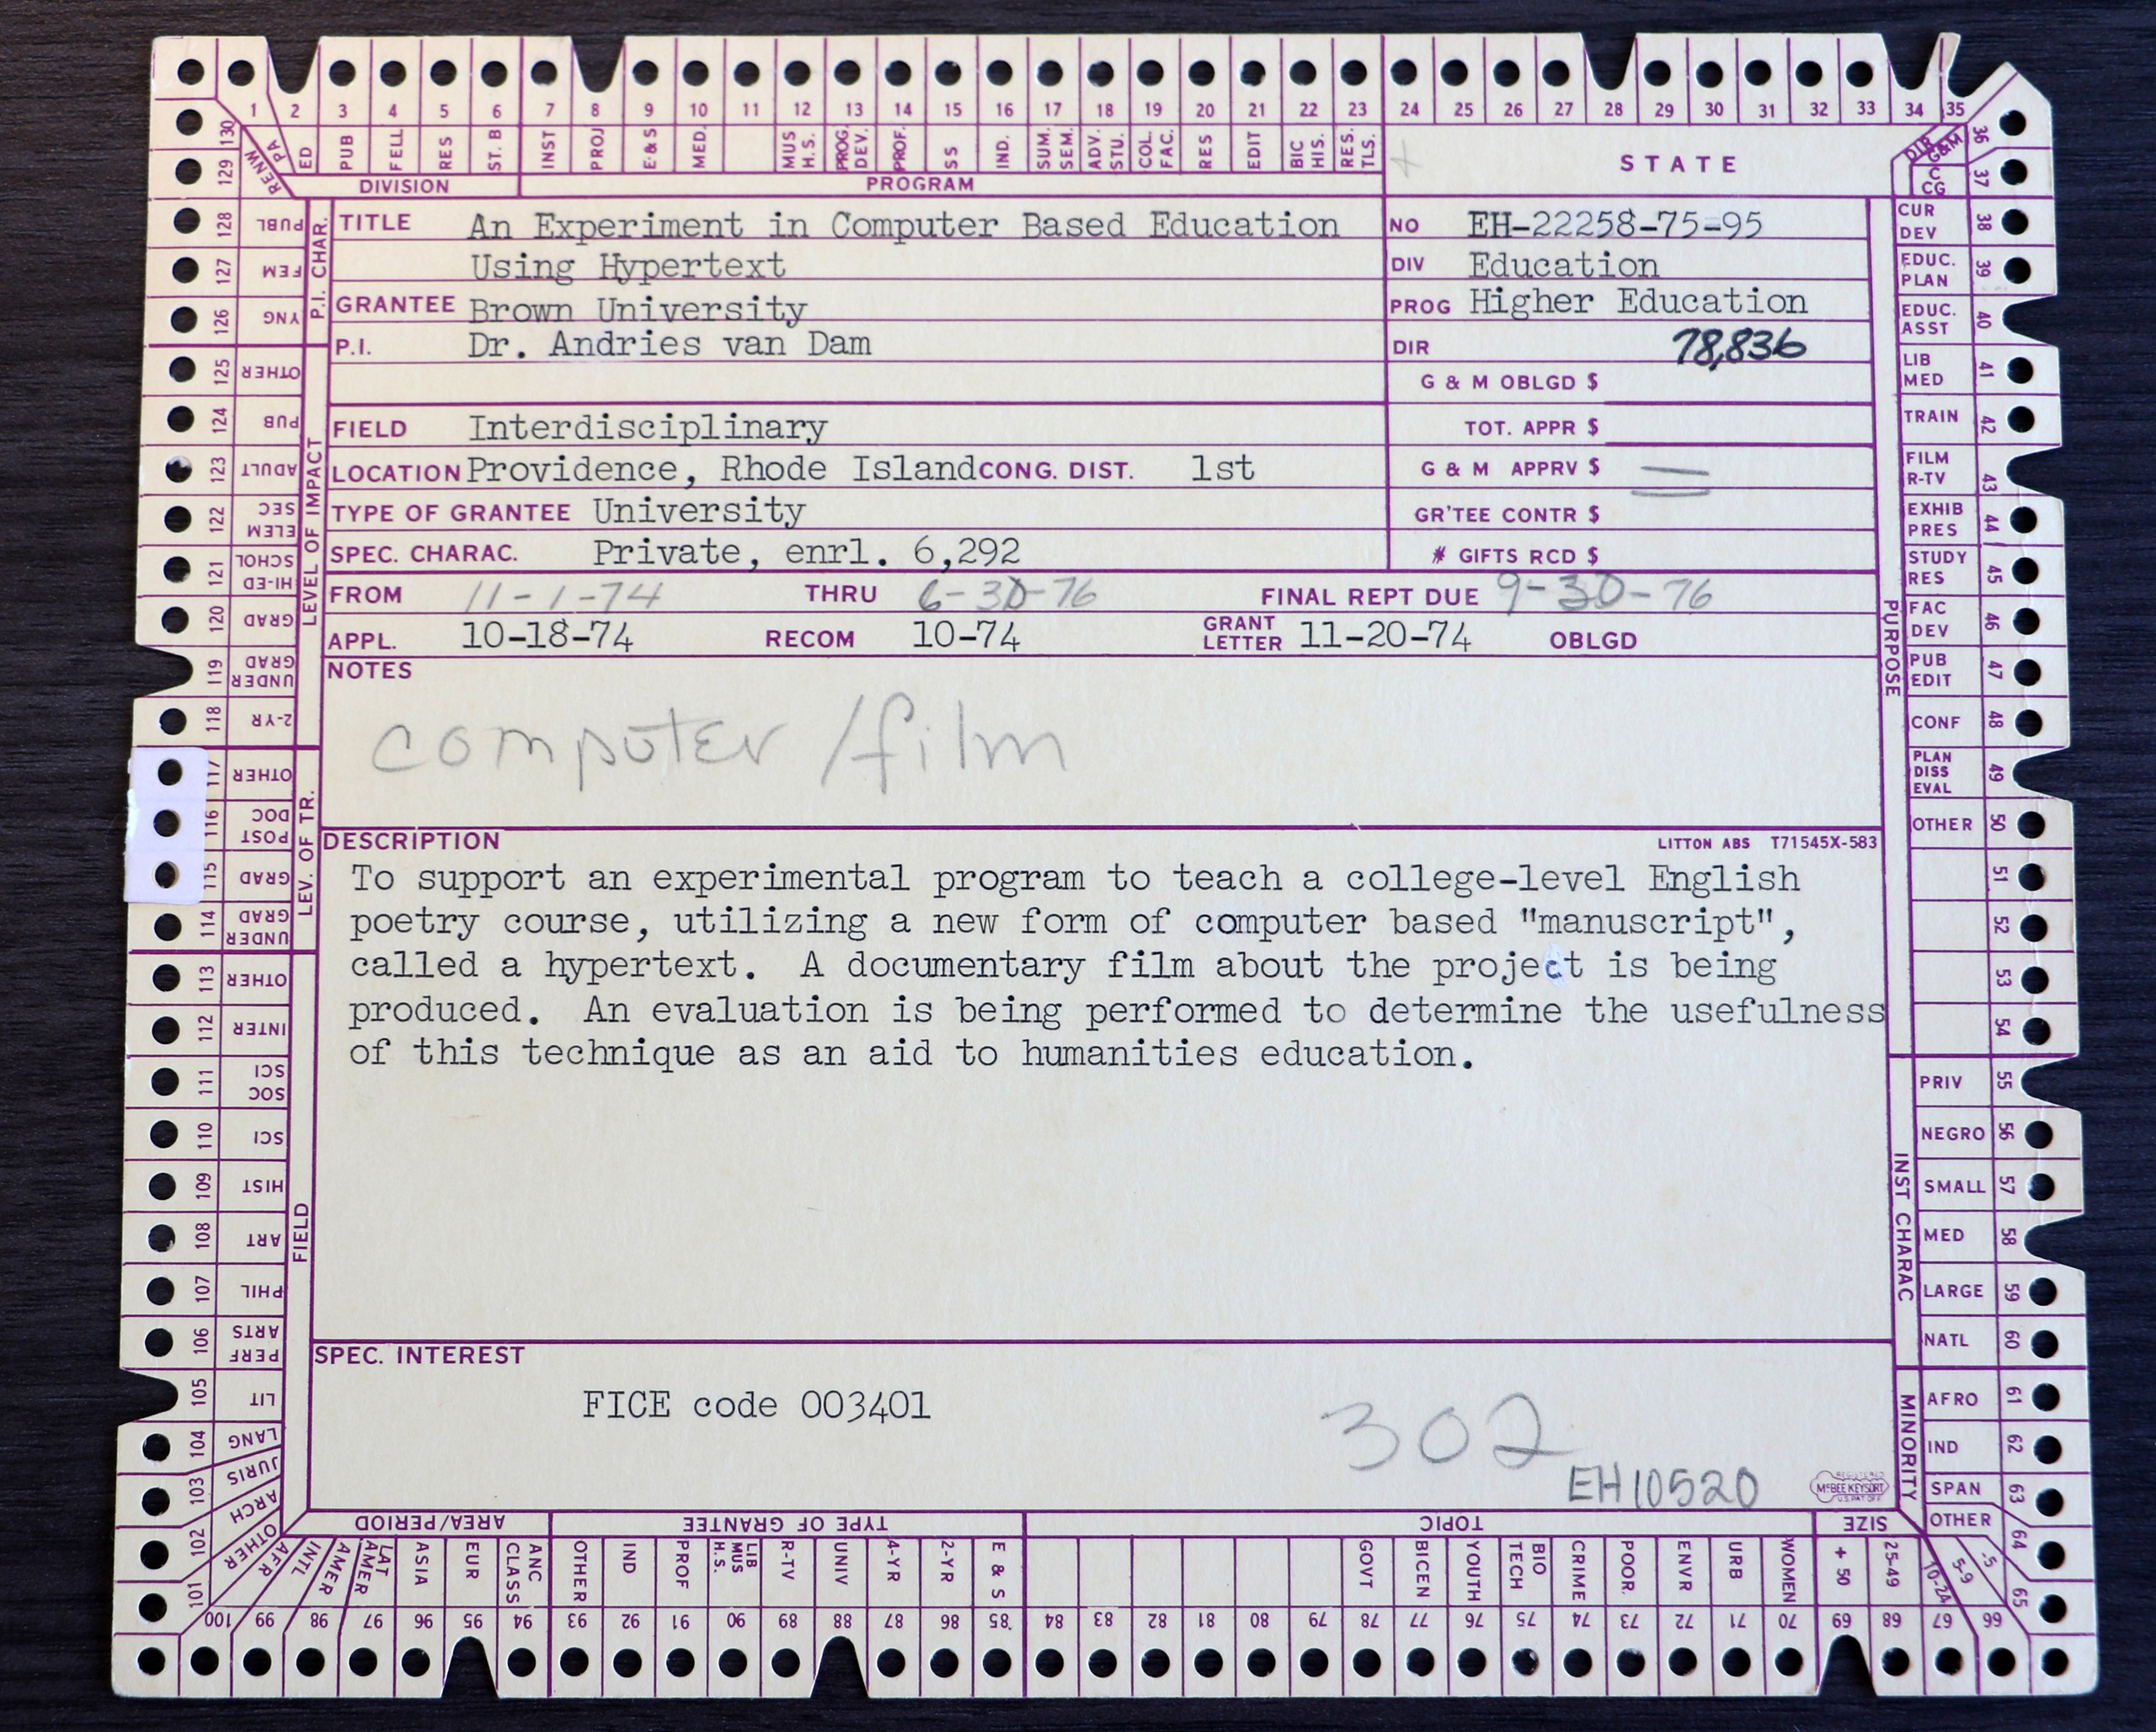 A 1974 Education grant to Dr. Andries van Dam at Brown University: An Experiment in Computer Based Education Using Hypertext.